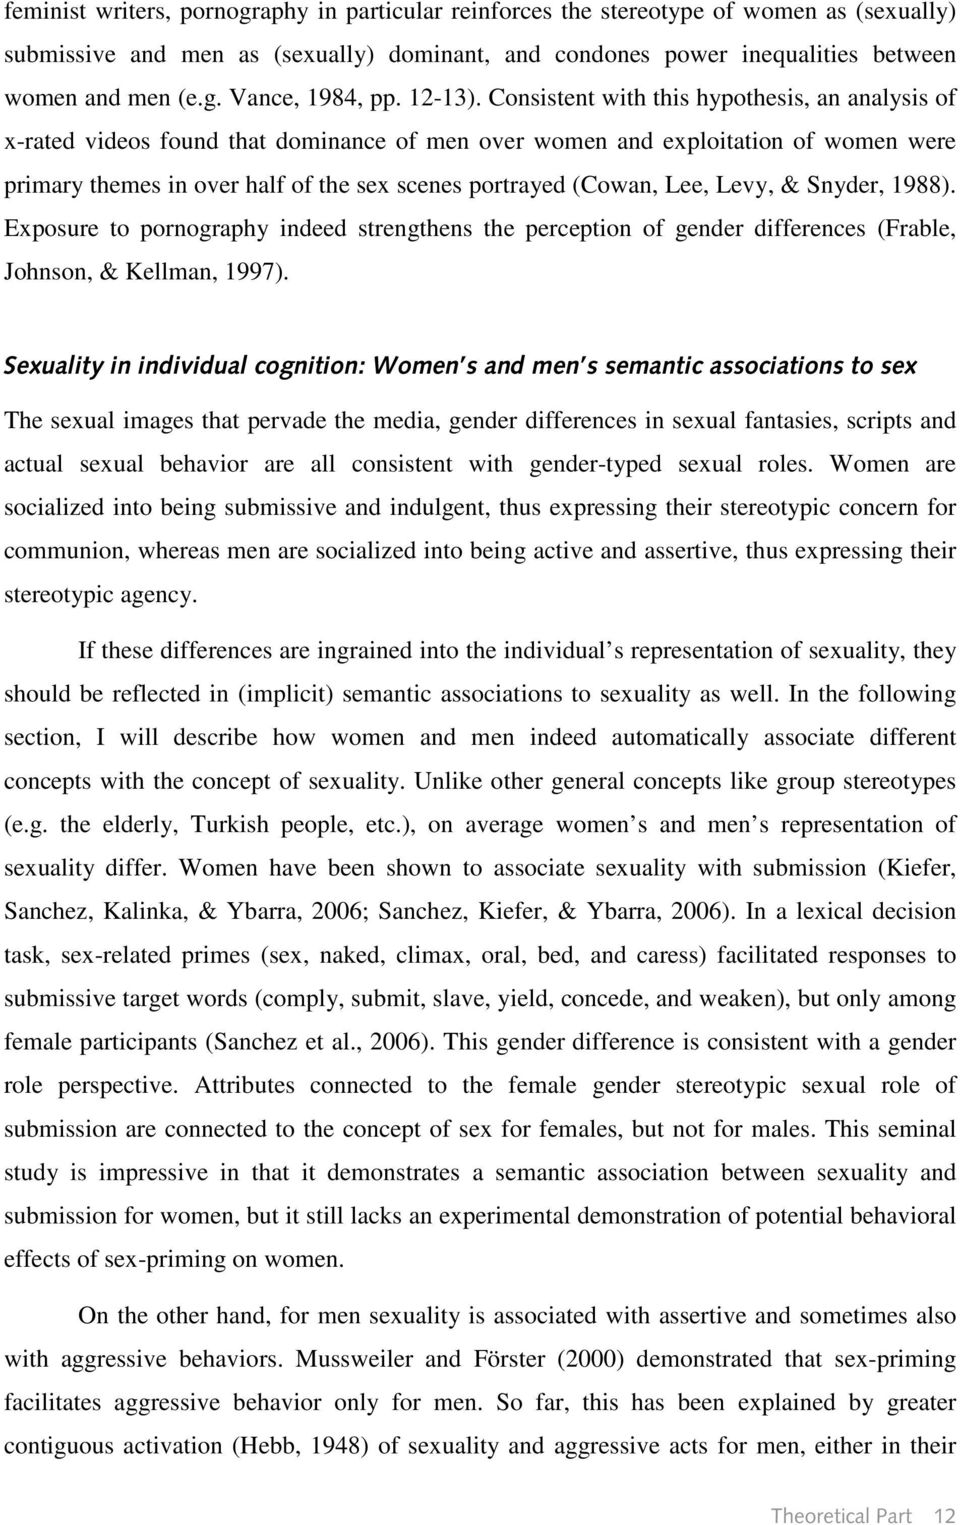 Consistent with this hypothesis, an analysis of x-rated videos found that dominance of men over women and exploitation of women were primary themes in over half of the sex scenes portrayed (Cowan,